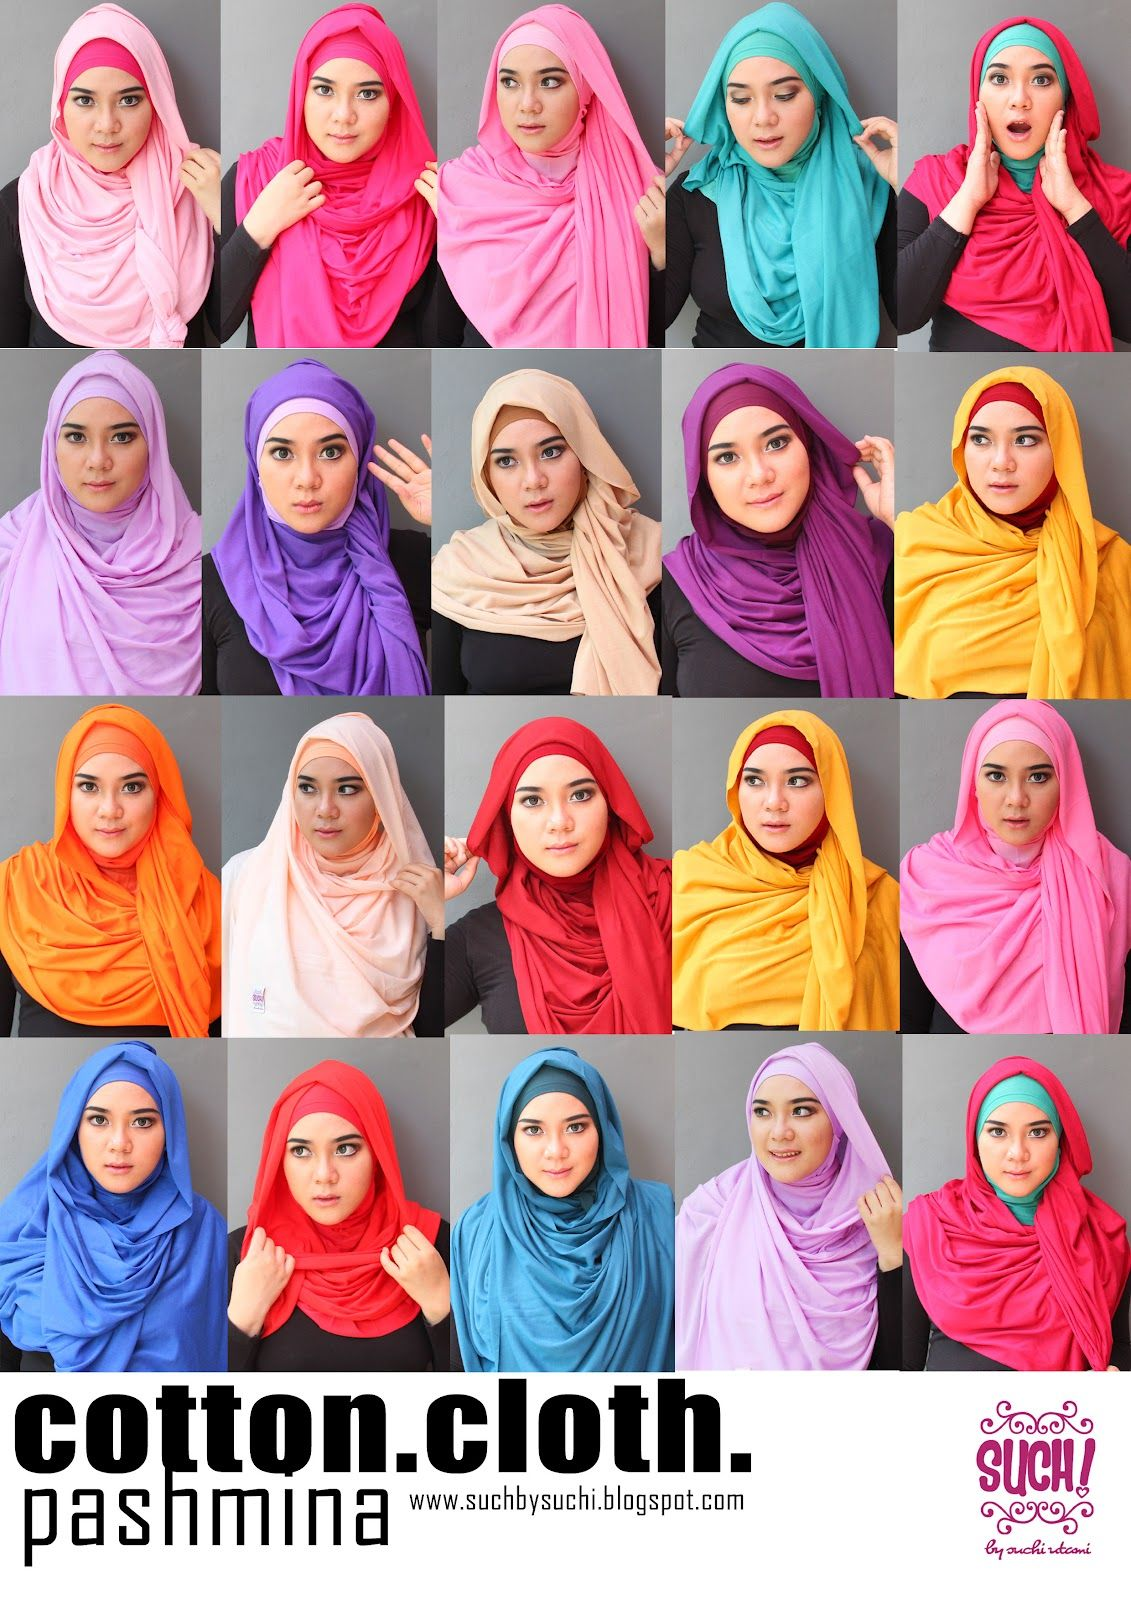 Such By Suchi Utami The Queen Of Cotton Cloth Pashmina Hijab